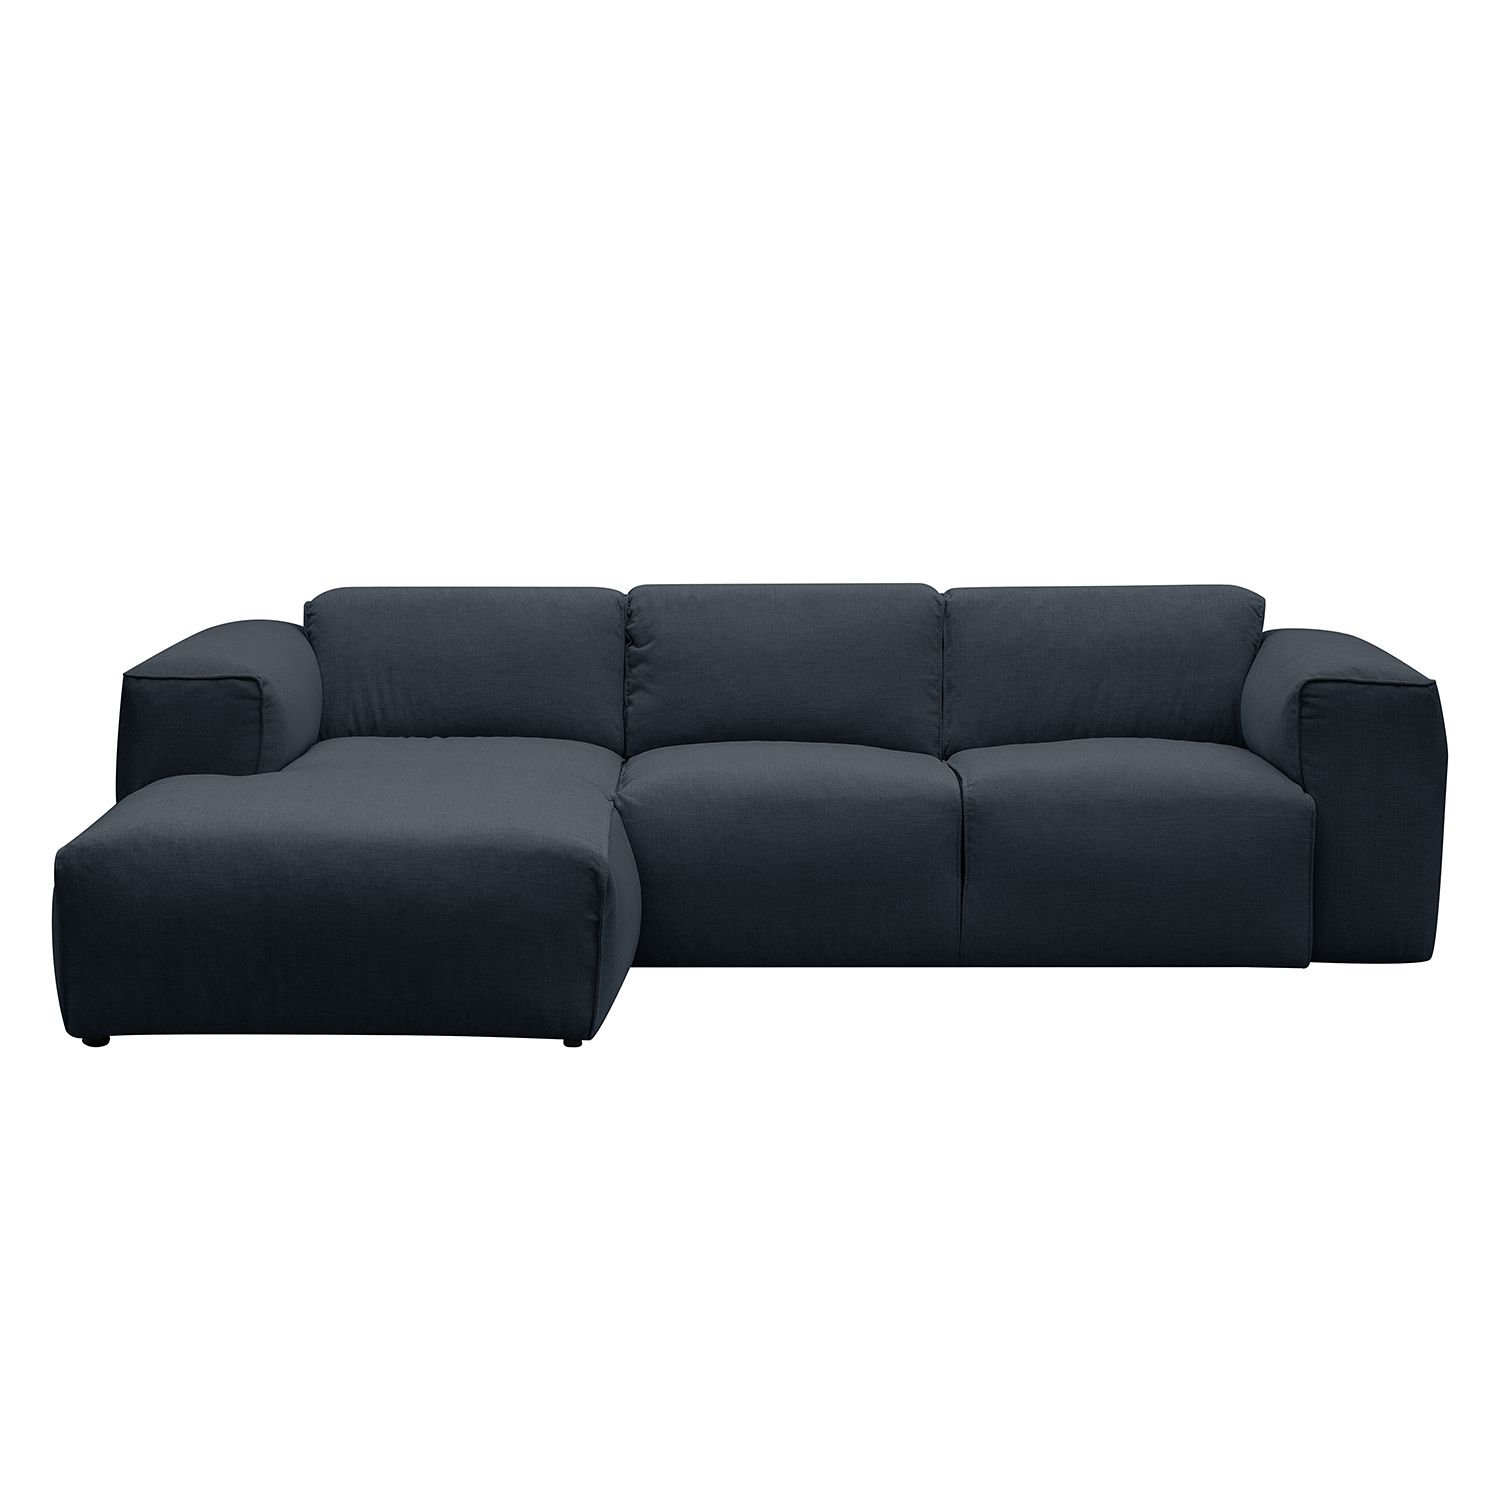 Eckcouch modern  Sofa Hudson II (3-Sitzer) Echtleder - Fashion For Home